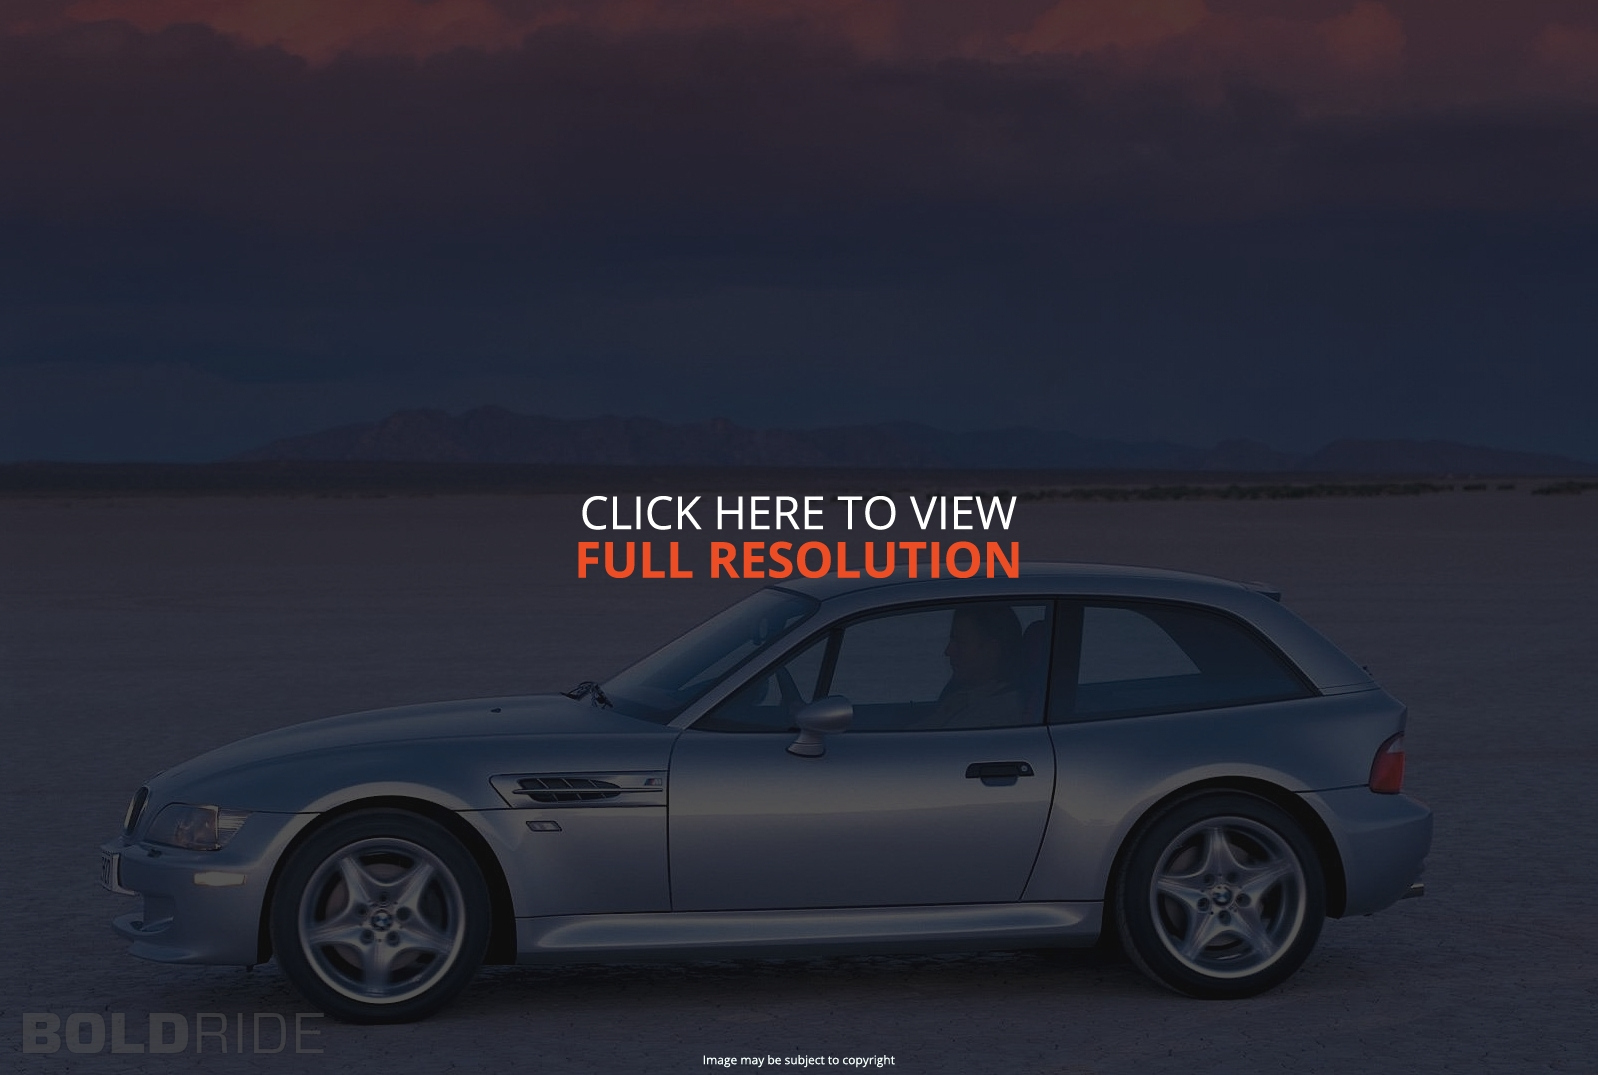 bmw z3 m coupe 2000 pictures #12